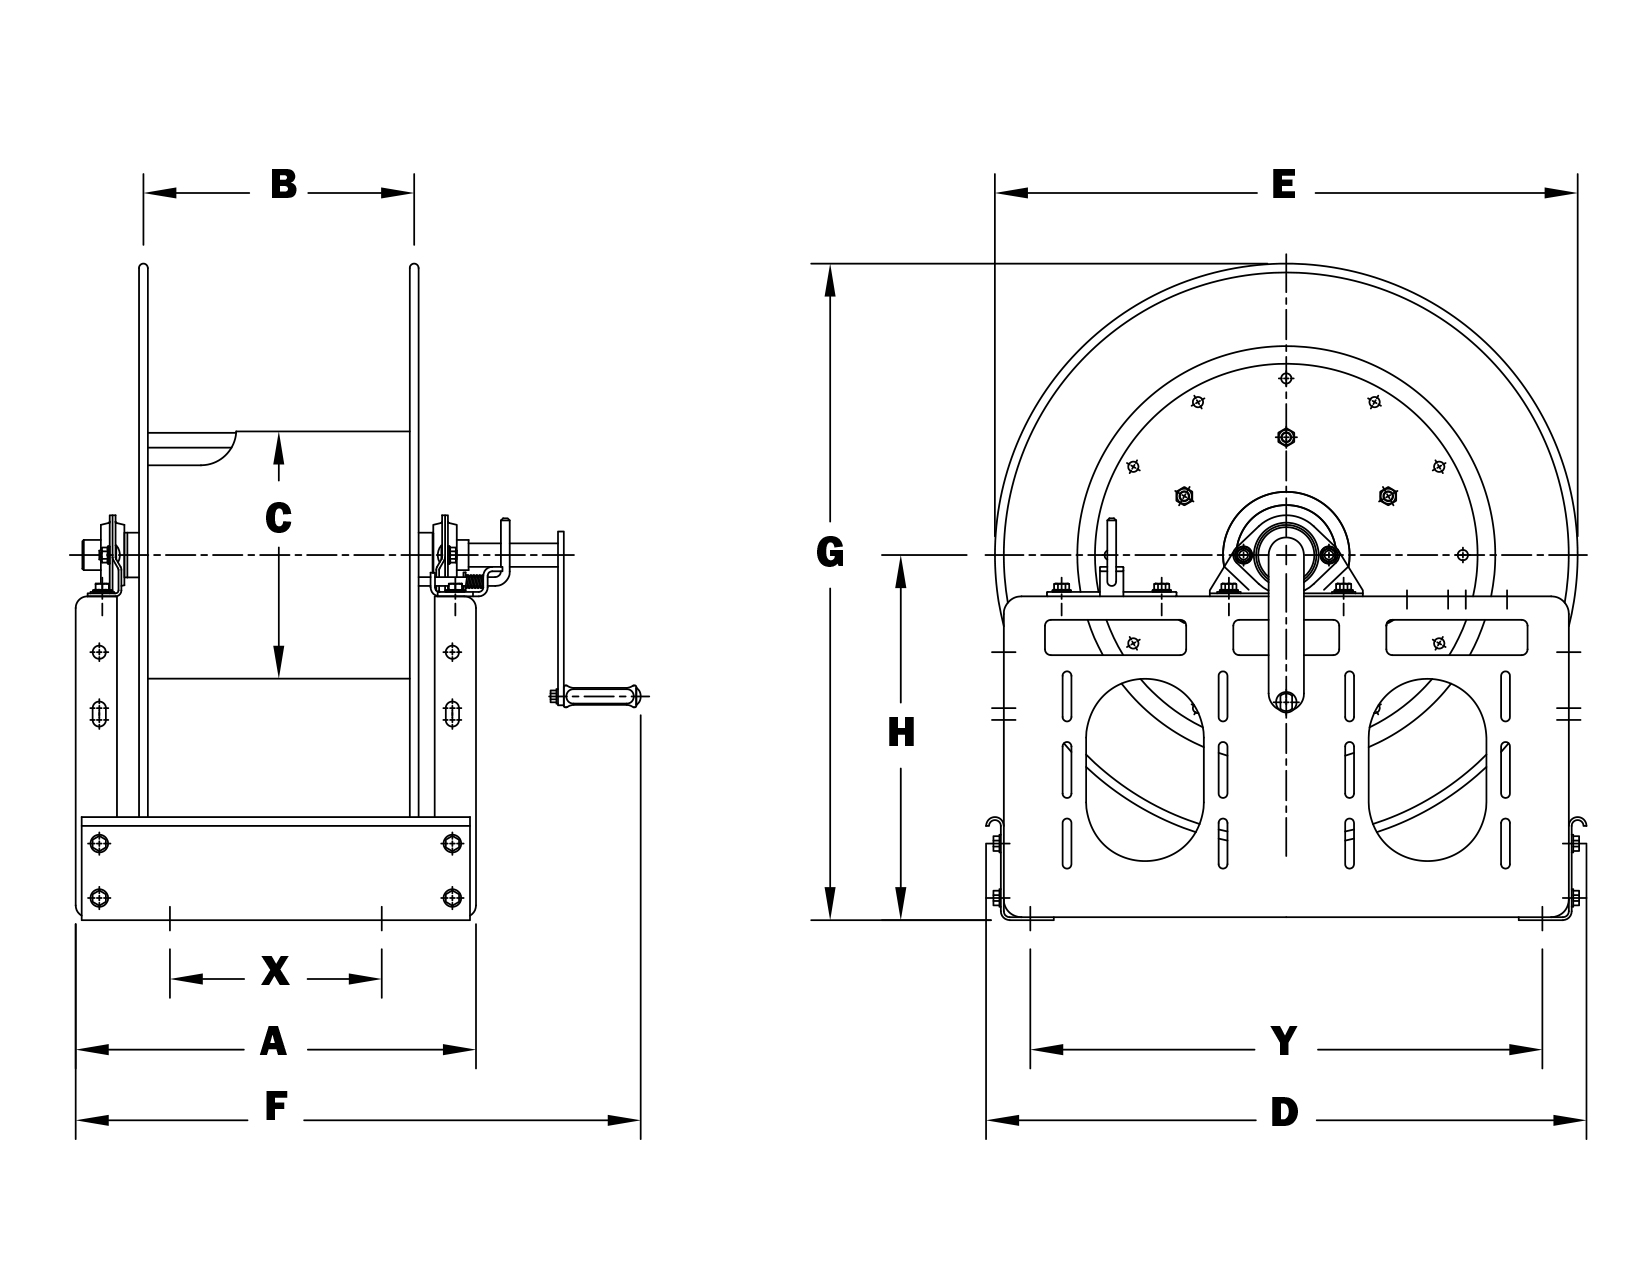 C3200 Schematic_1492436319 c3200 series hannay reels official site hannay reel wiring diagram at panicattacktreatment.co